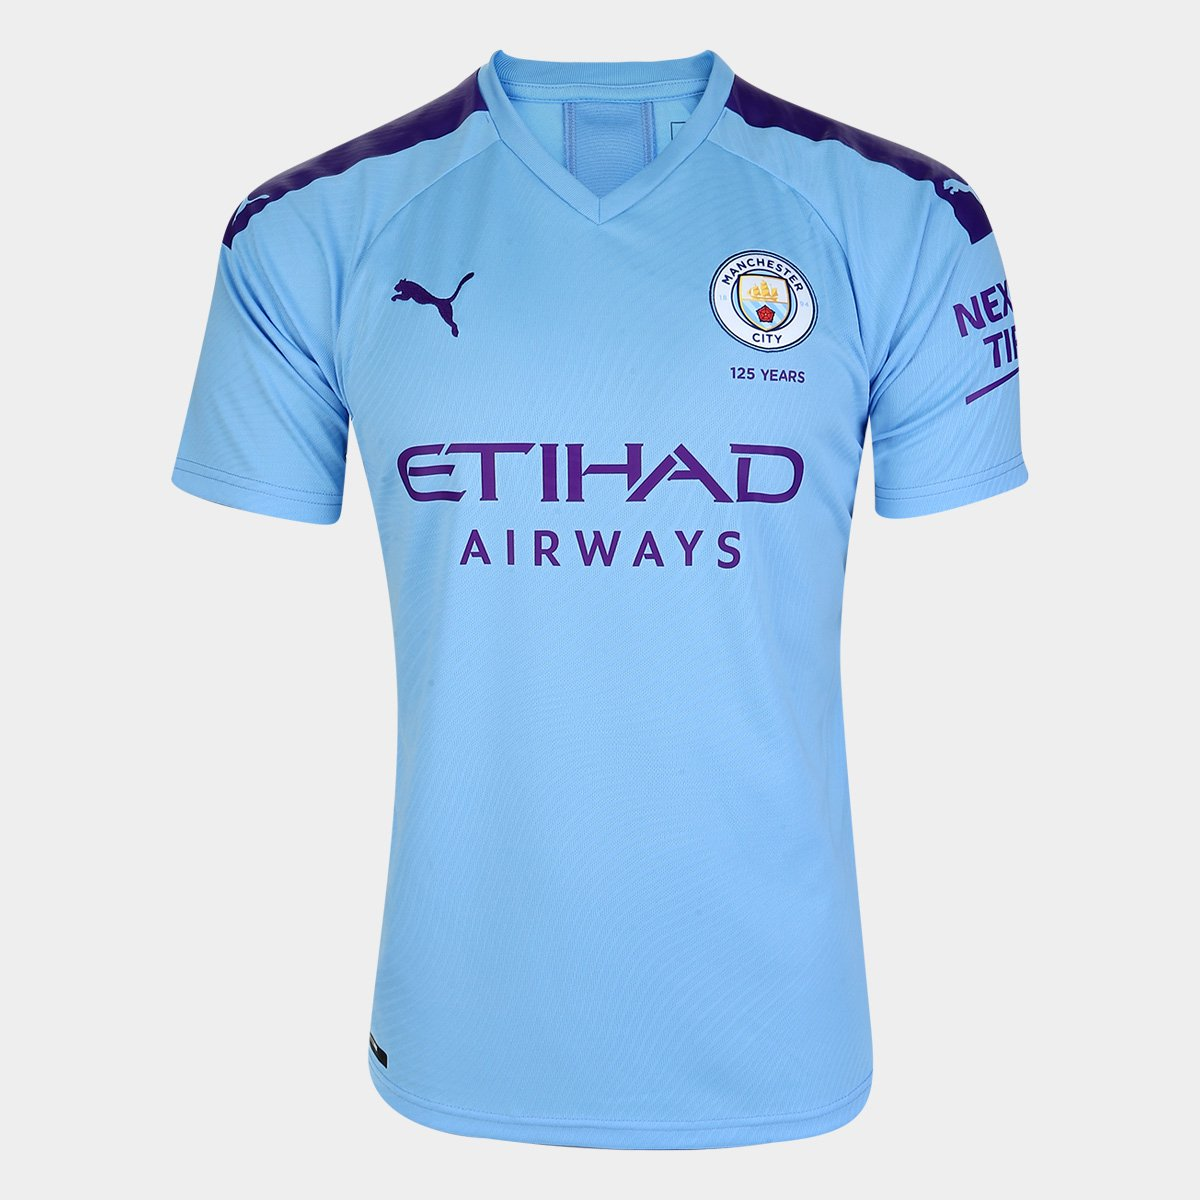 Oficiales Tratamiento Preferencial Asesor  Camisa Manchester City Home 19/20 s/n° - Torcedor Puma | Netshoes